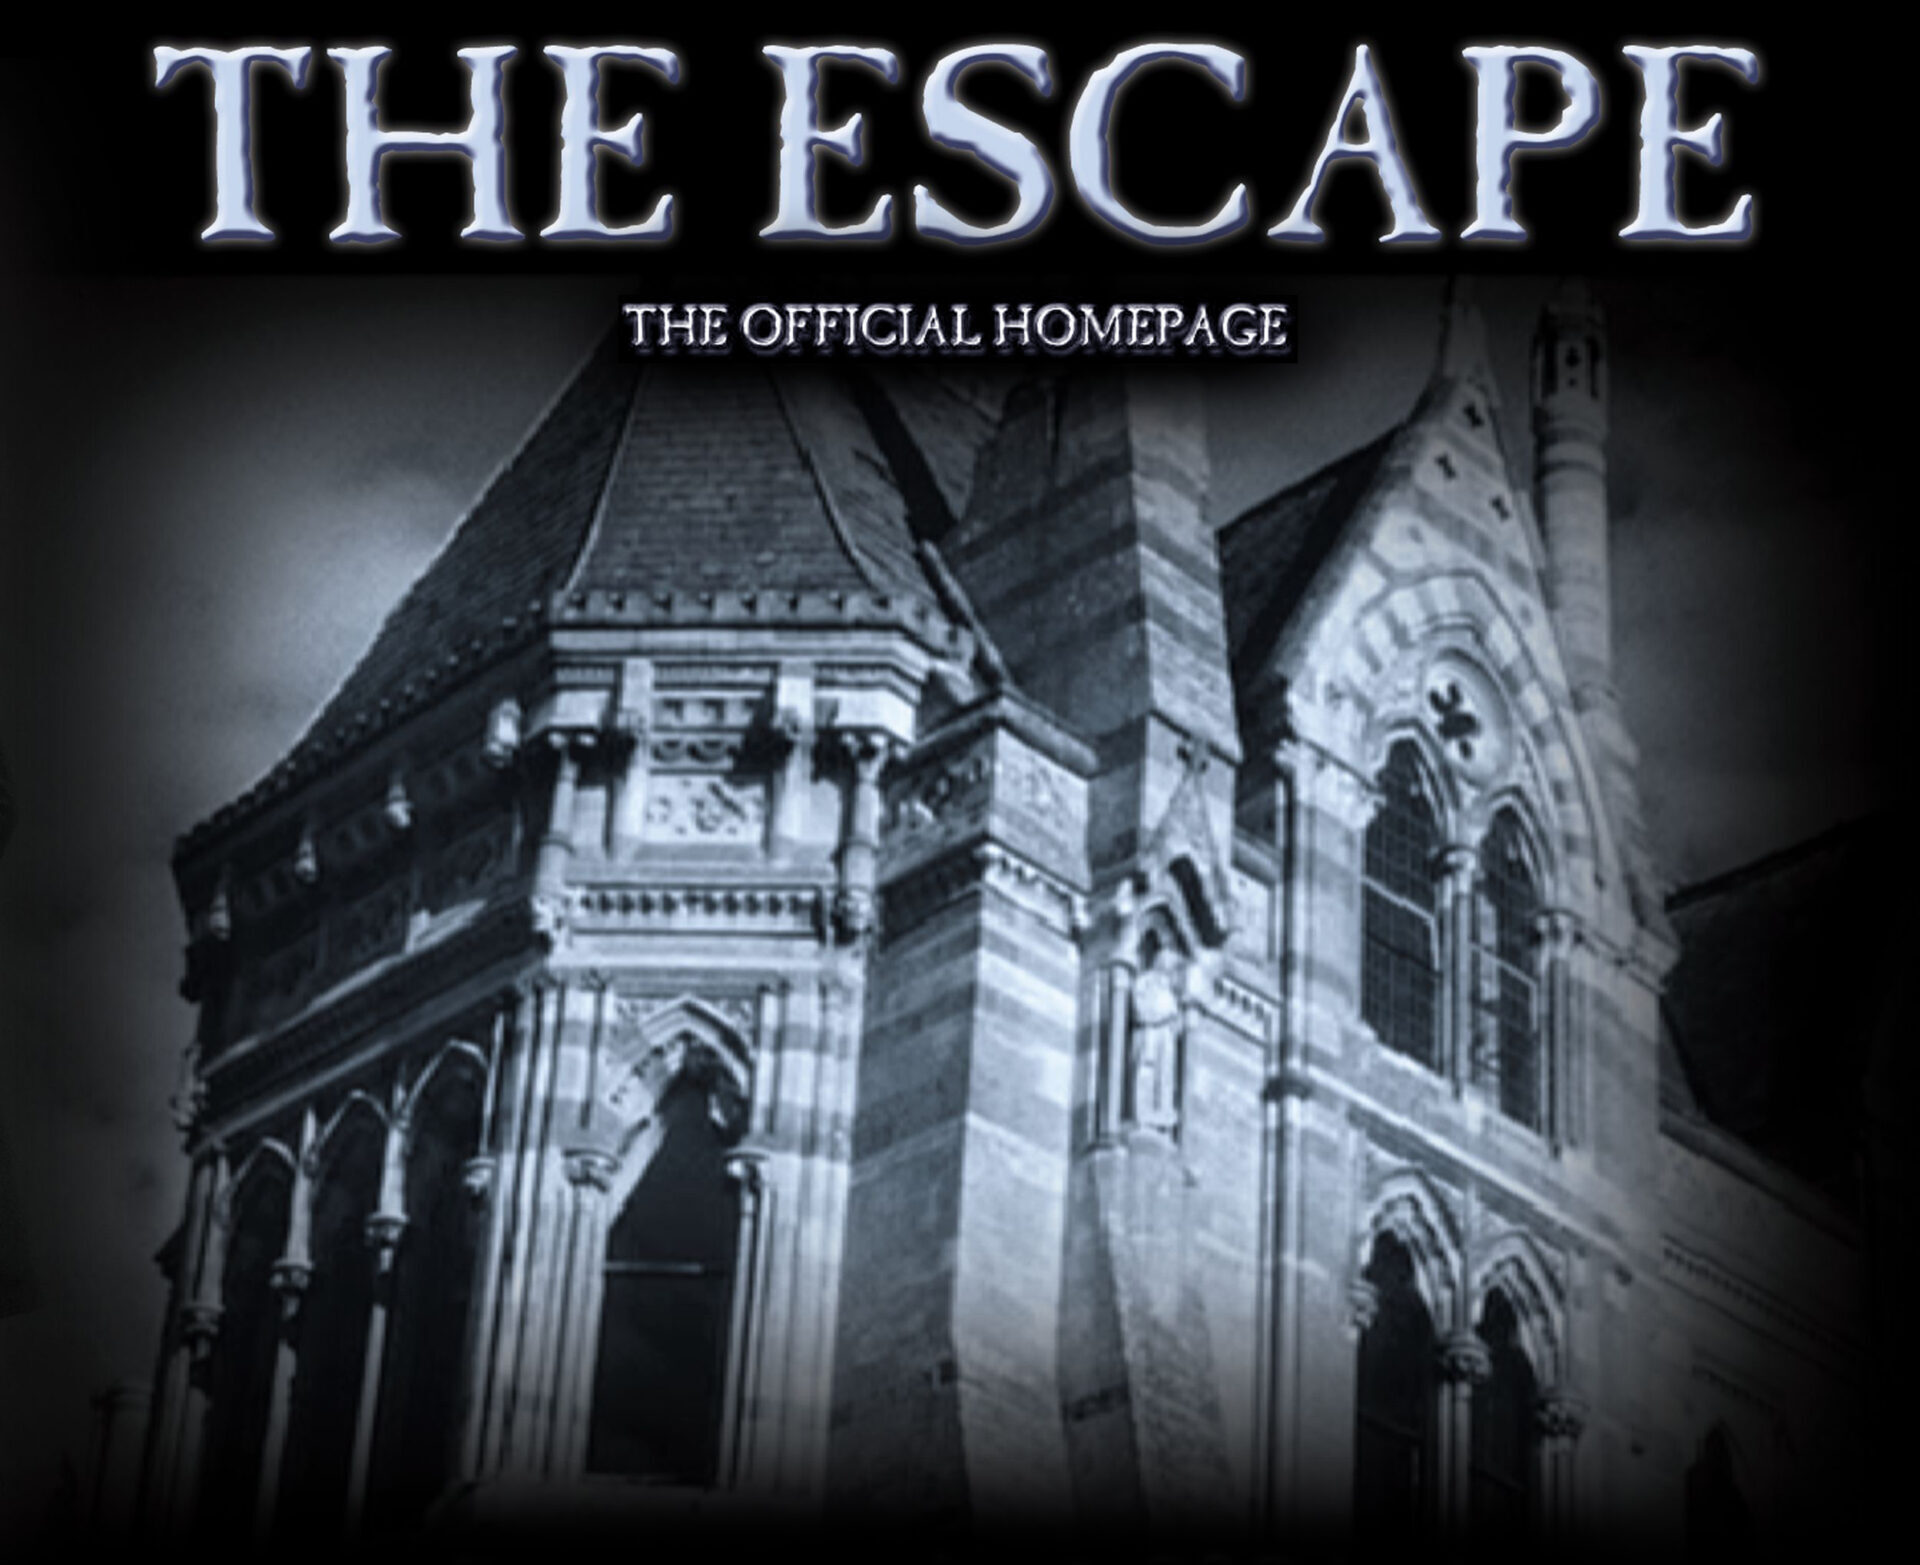 THE ESCAPE - THE OFFICIAL HOMEPAGE